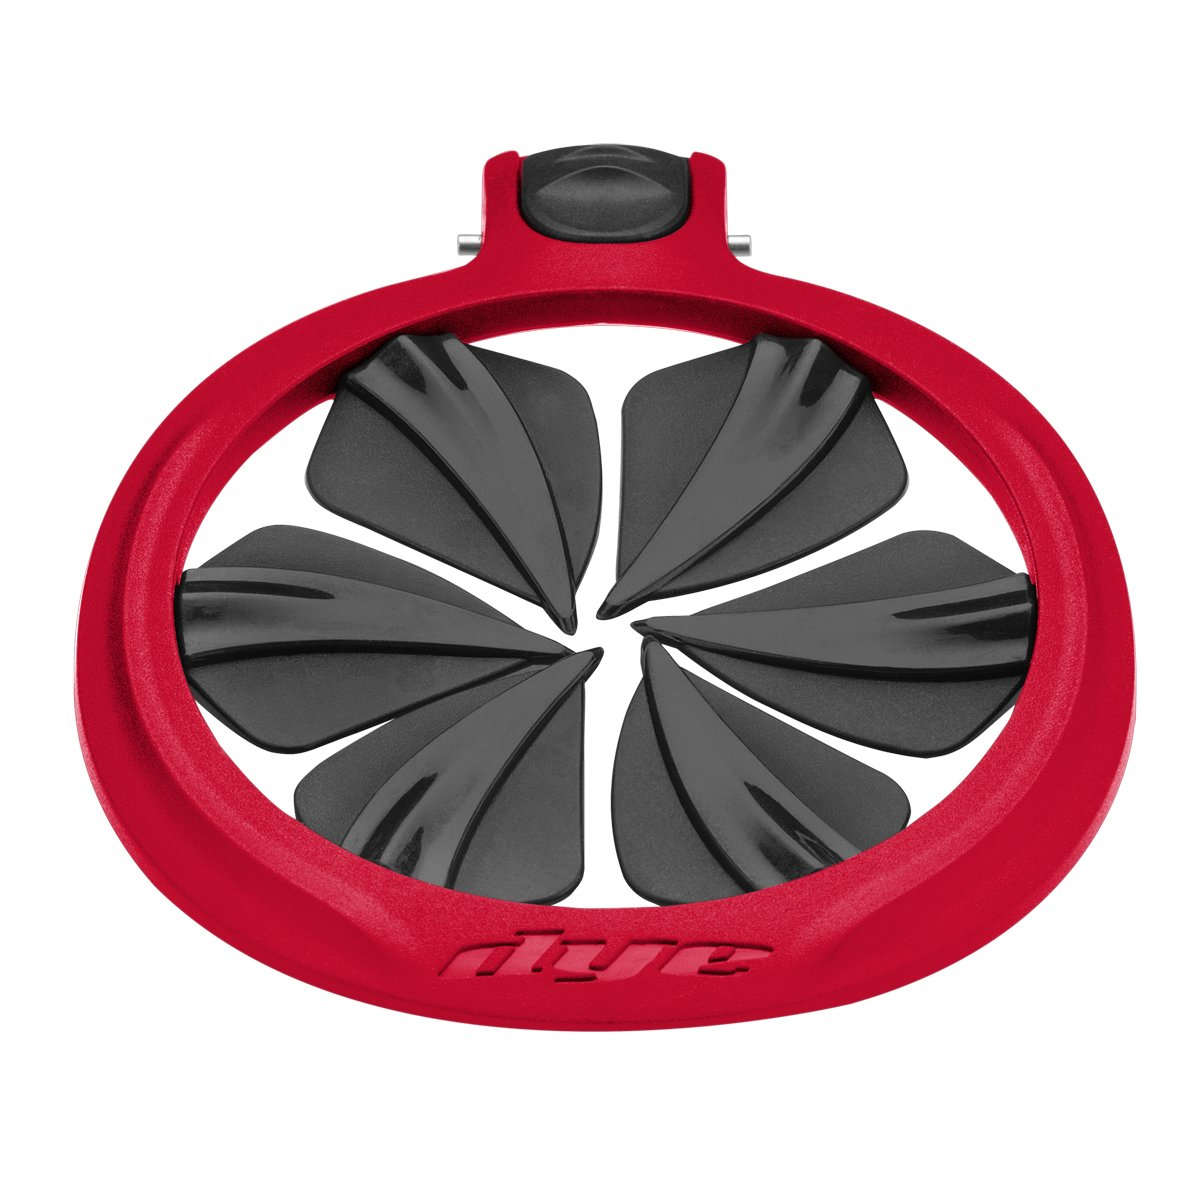 Dye Rotor R2 Quick Feed - Red by Dye